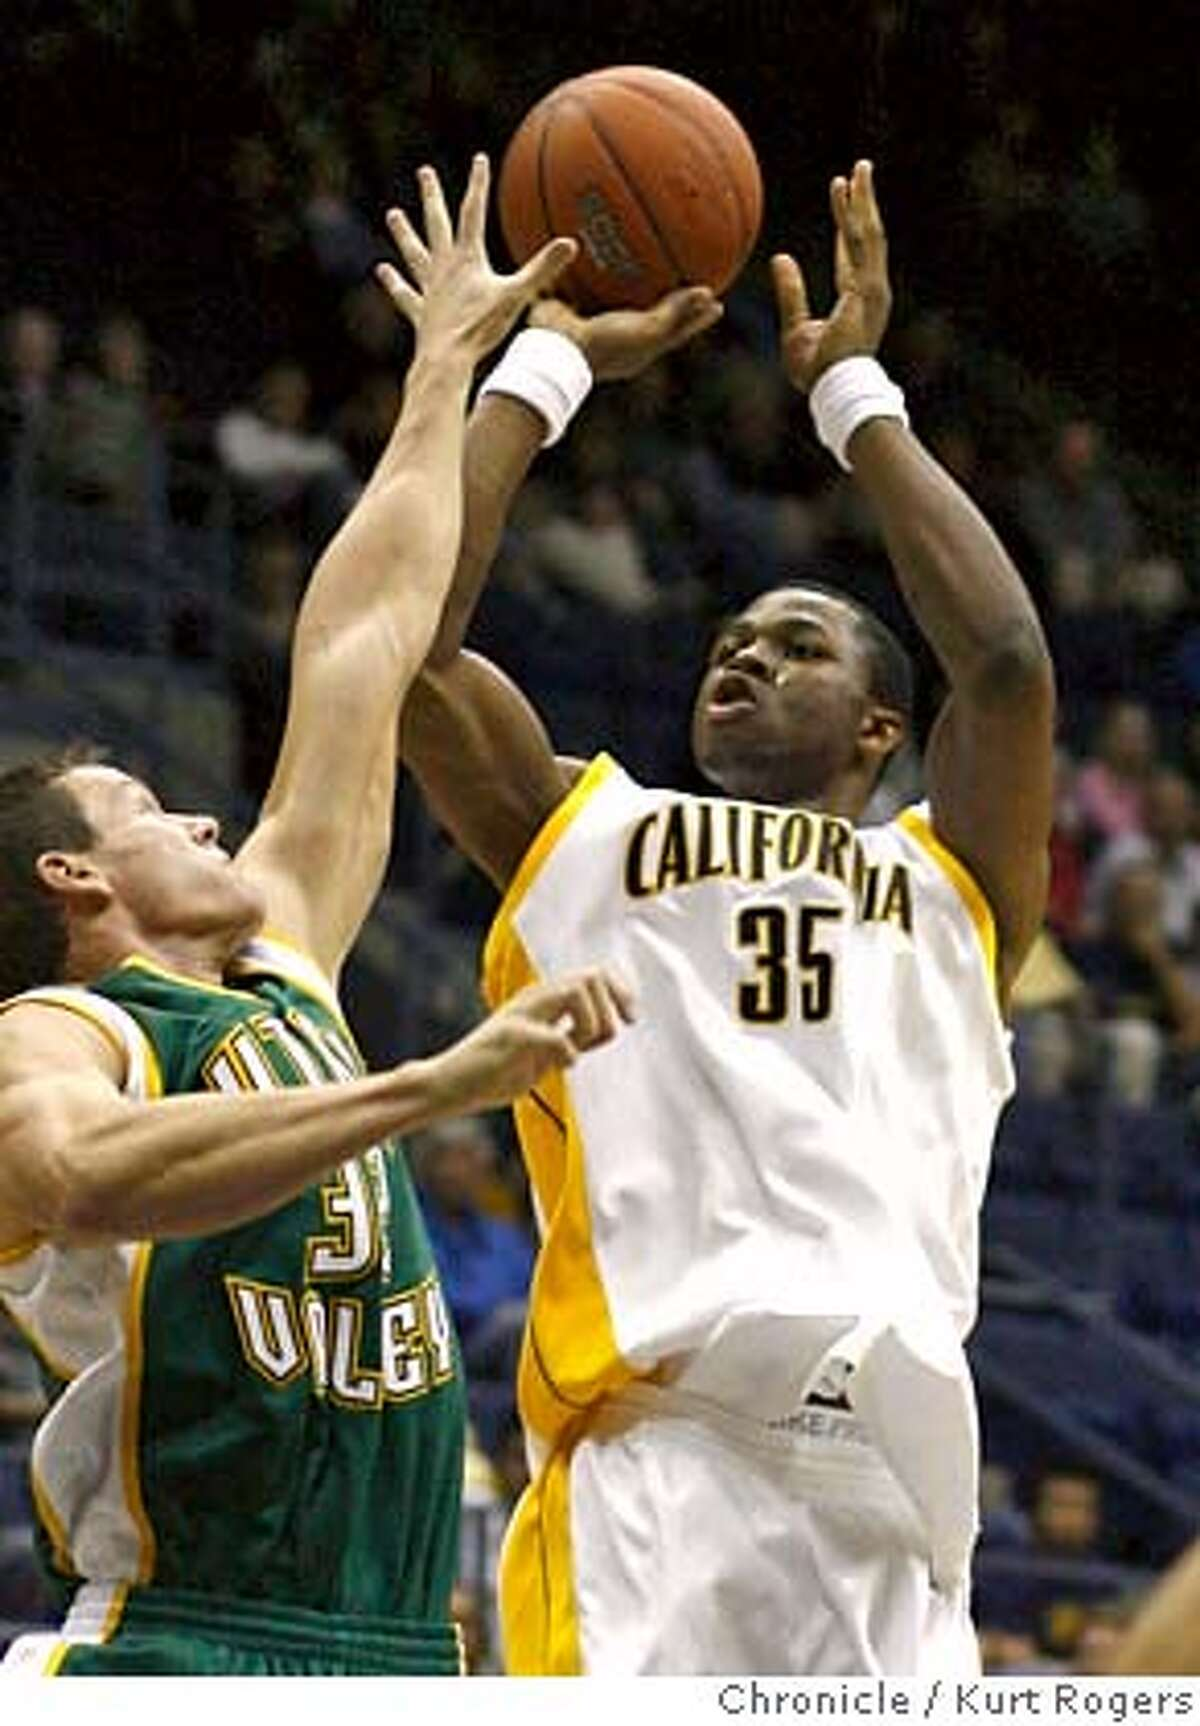 DeVon Hardin with a shot over Jordan Brady in the first half of play the Cal up 29-21 at the half . The California Golden Bears vs Utah Valley State Wolverines At Haas Pavilion . Wednesday, November 15, 2006. KURT ROGERS/THE CHRONICLE BERKELEY THE CHRONICLE SFC